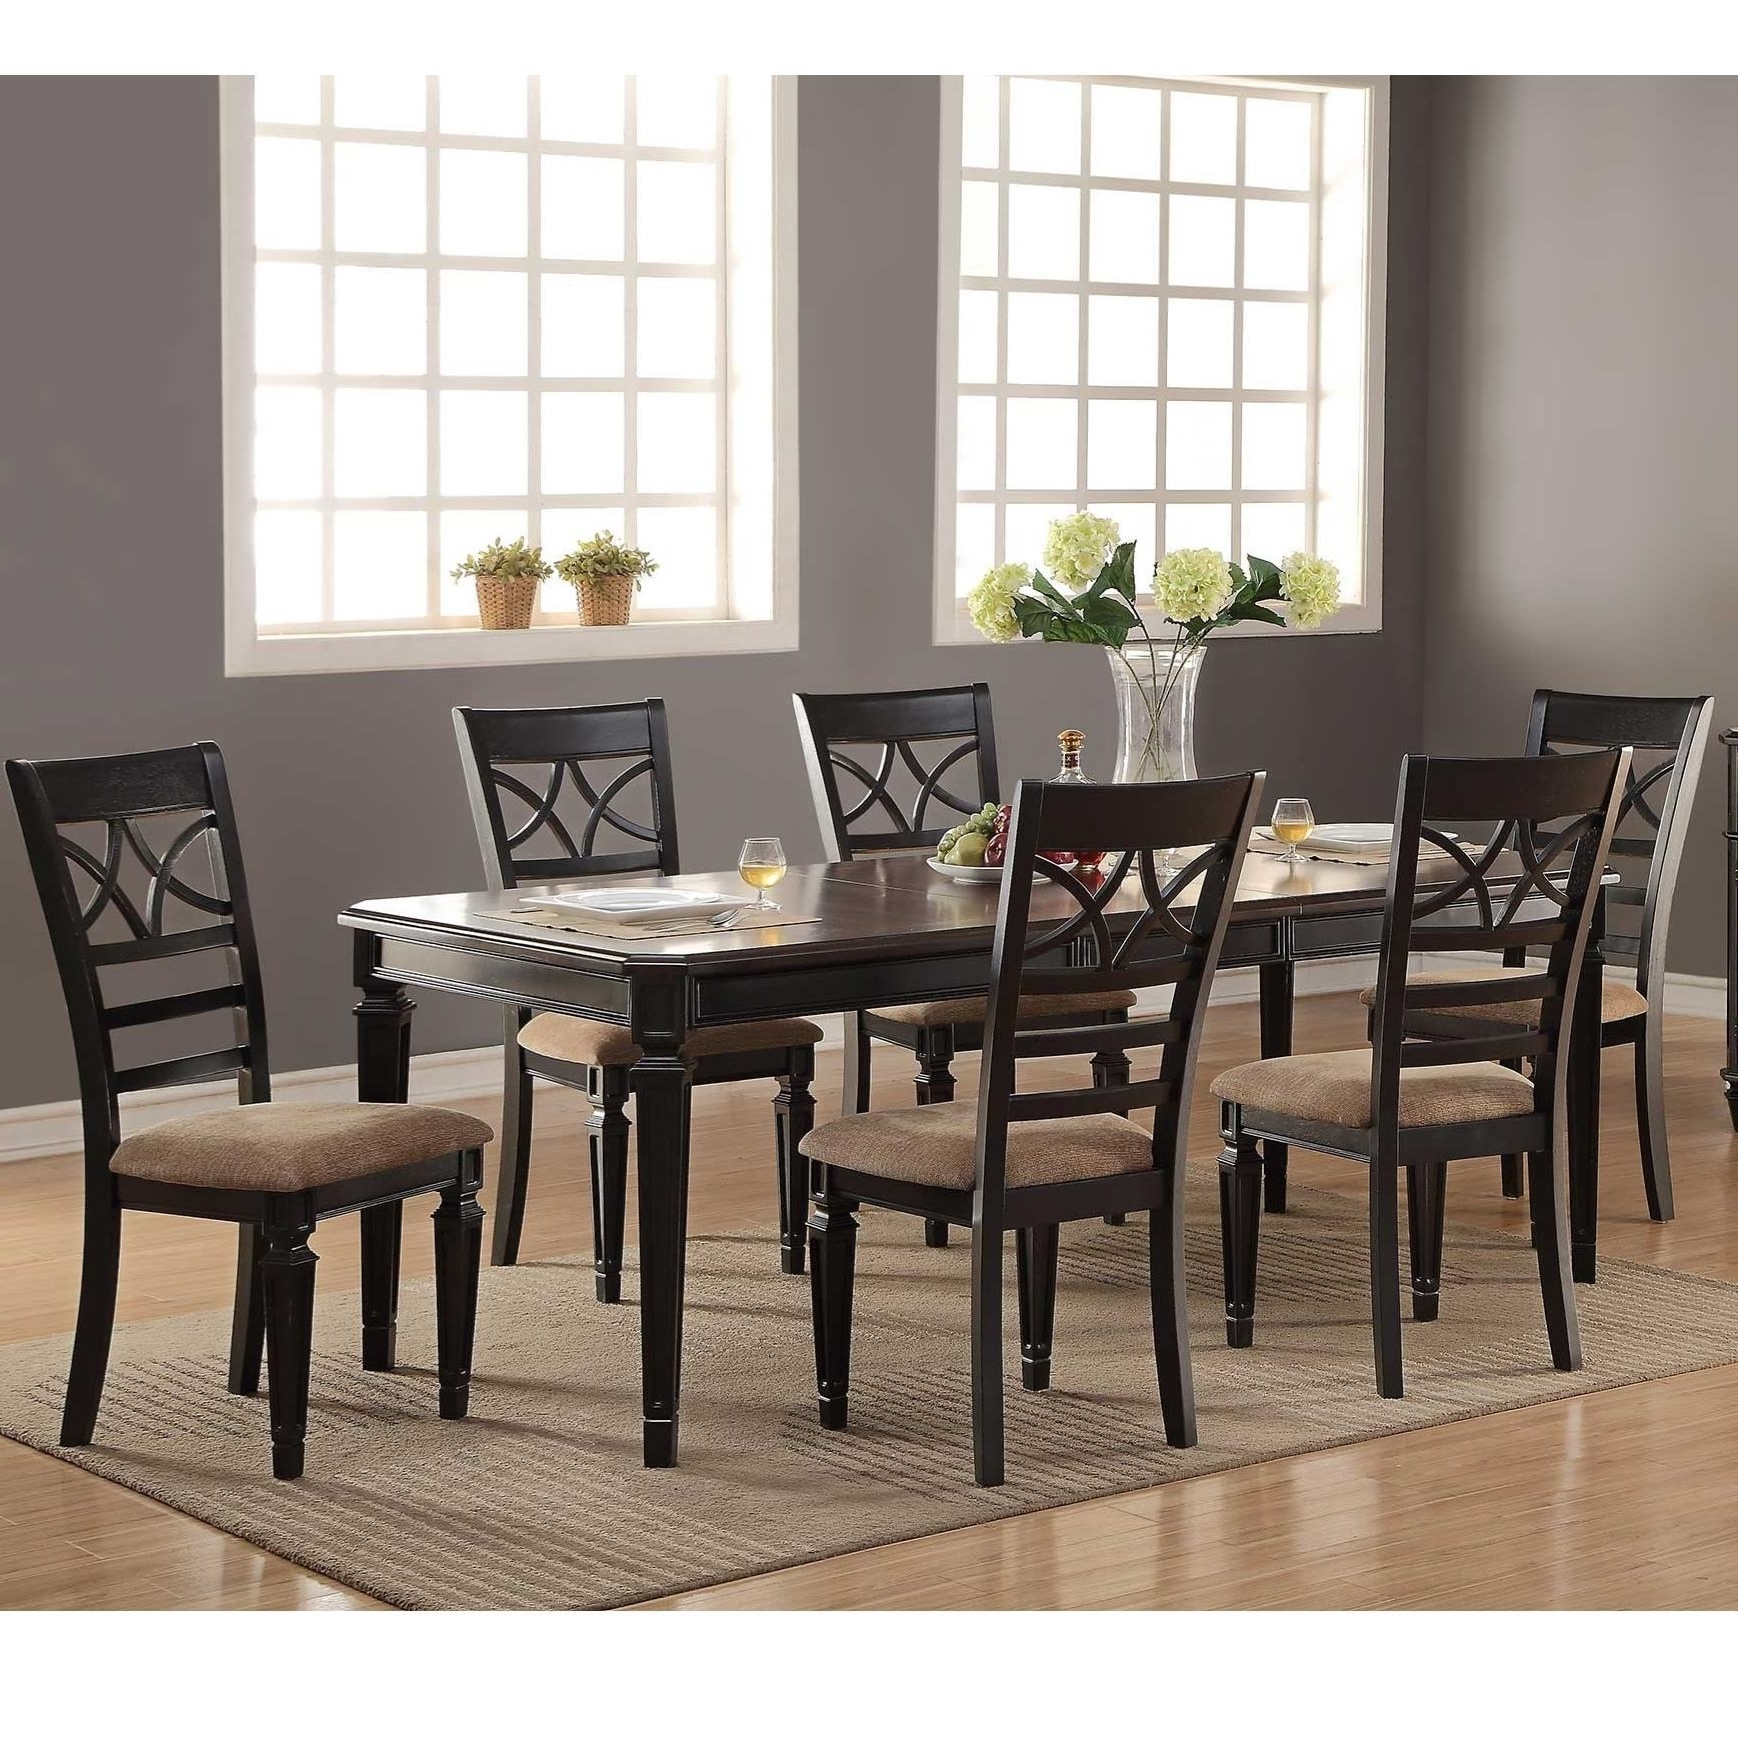 Most Current Winners Only Arlington 7 Piece Dining Set With X Back Chairs In Parquet 7 Piece Dining Sets (View 7 of 25)